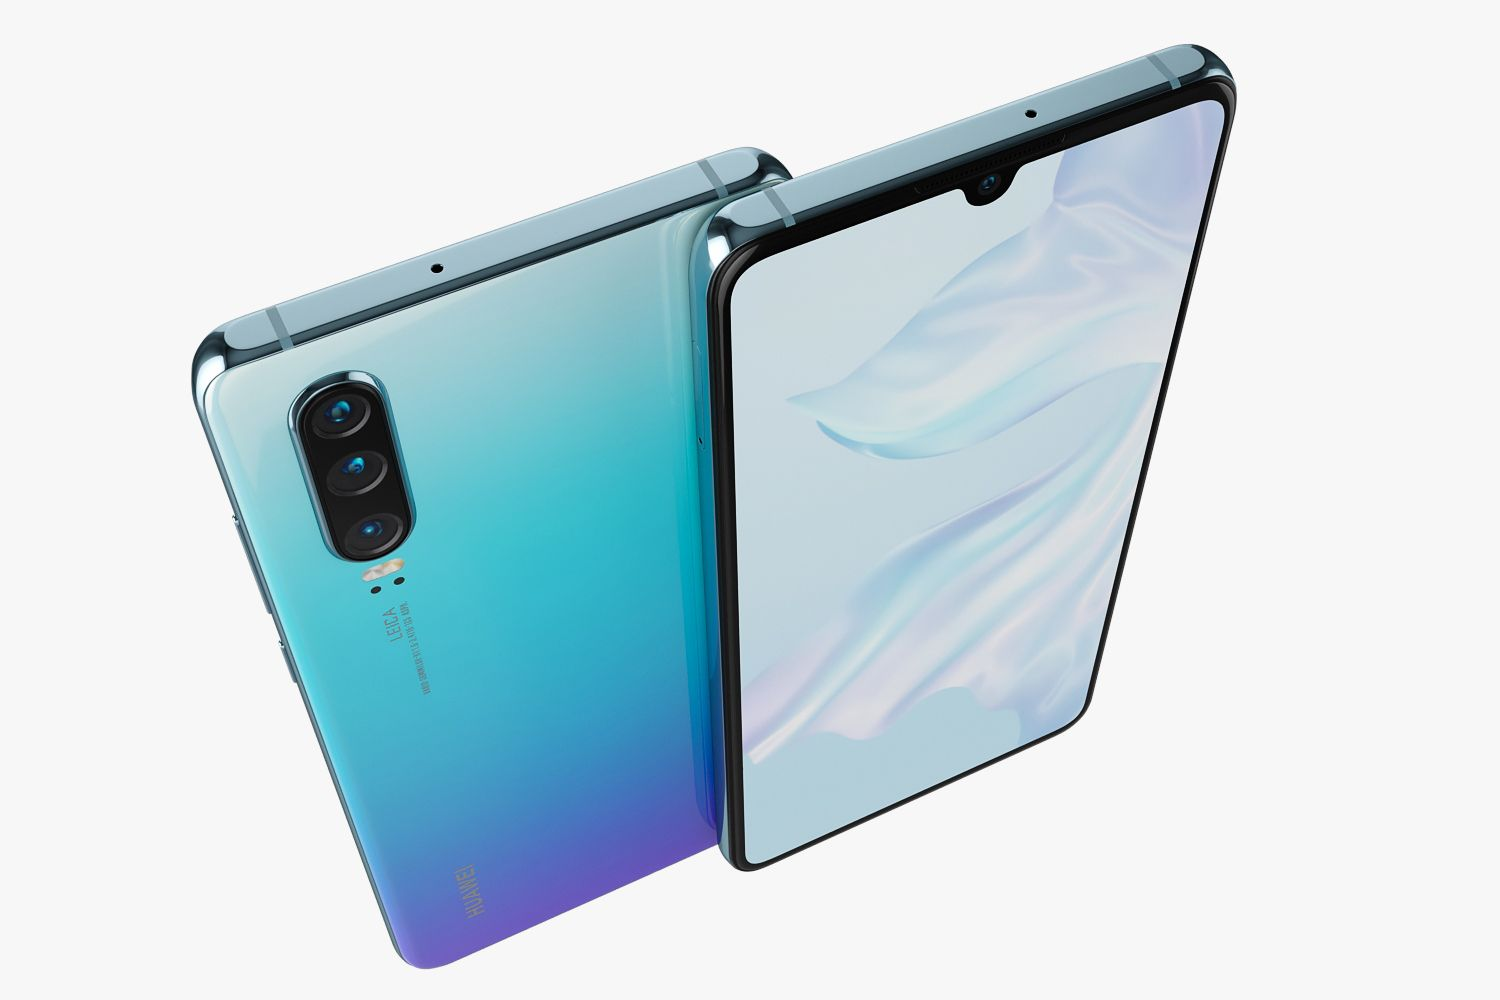 Huawei P30 And P30 Pro Collection Huawei Samsung Galaxy Phone Smartphone